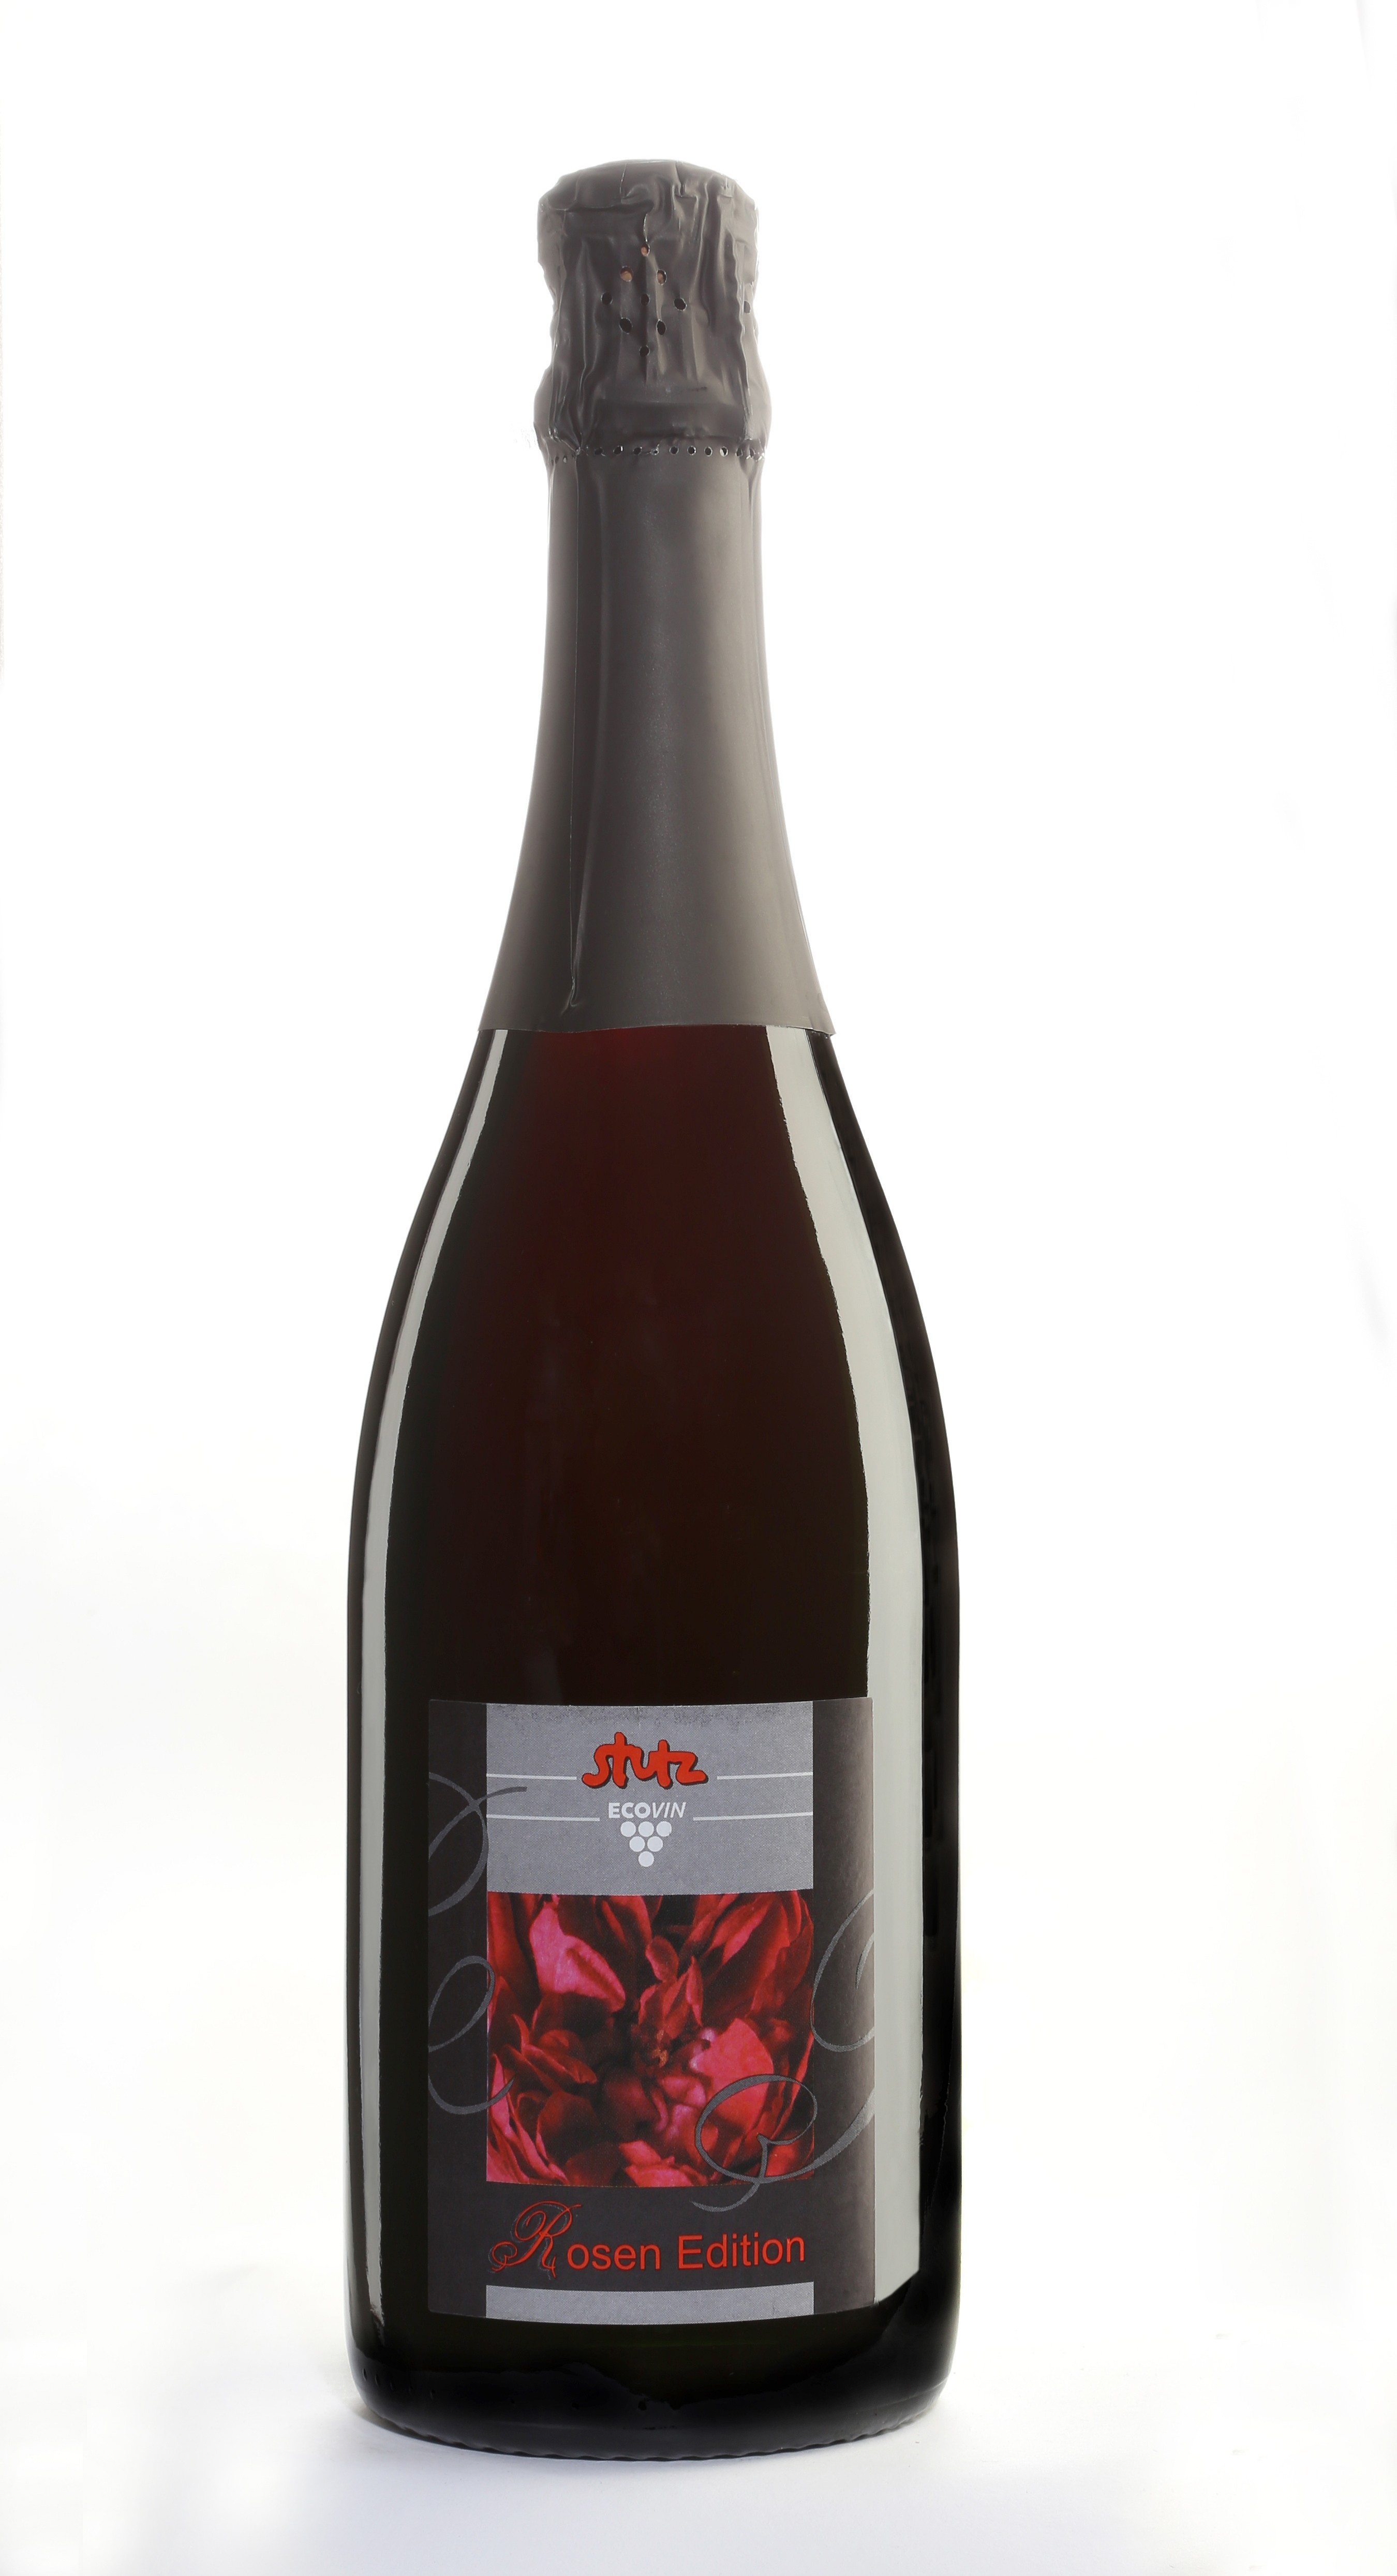 Rosen Edition Sekt-Perlwein 8% vol. 750ml